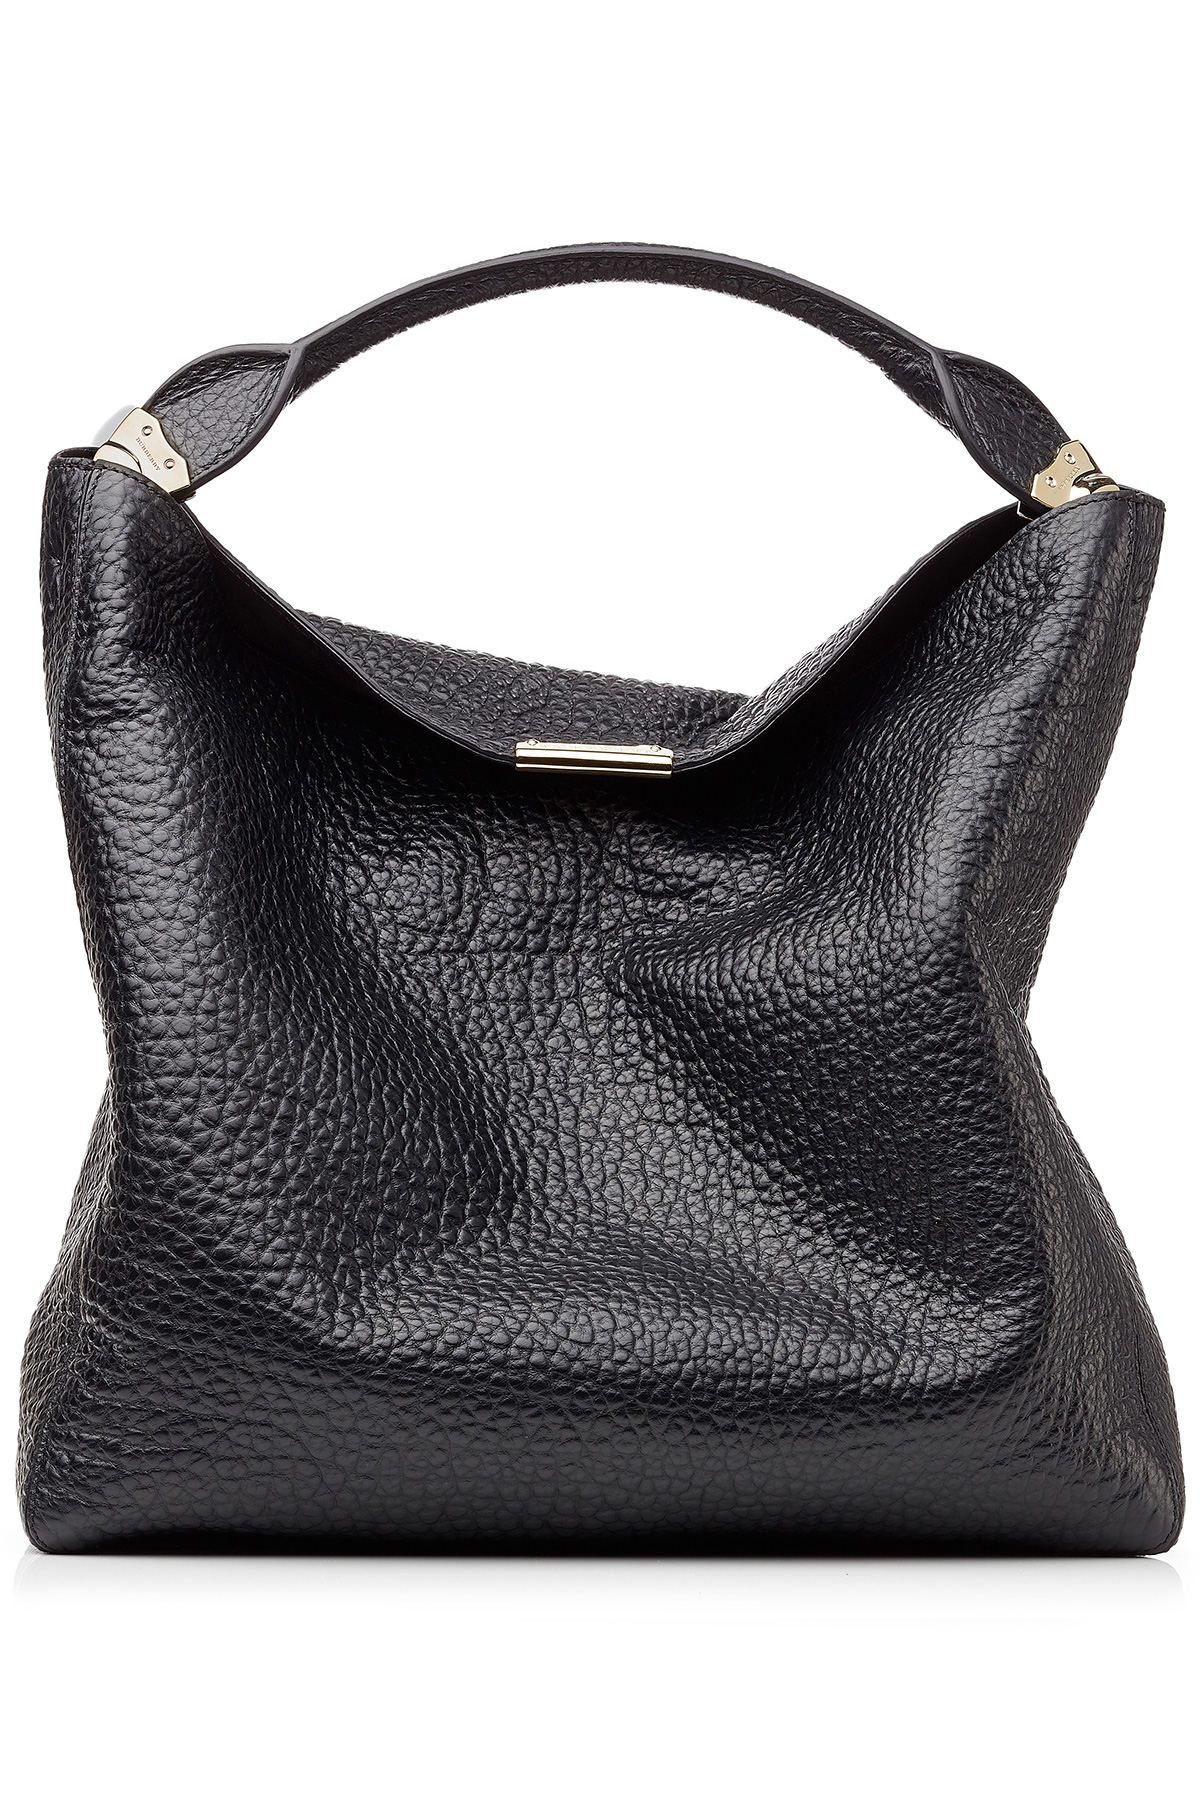 Lyst - Burberry Lindburn Embossed Leather Hobo Bag - Black in Black ef80bbef7f